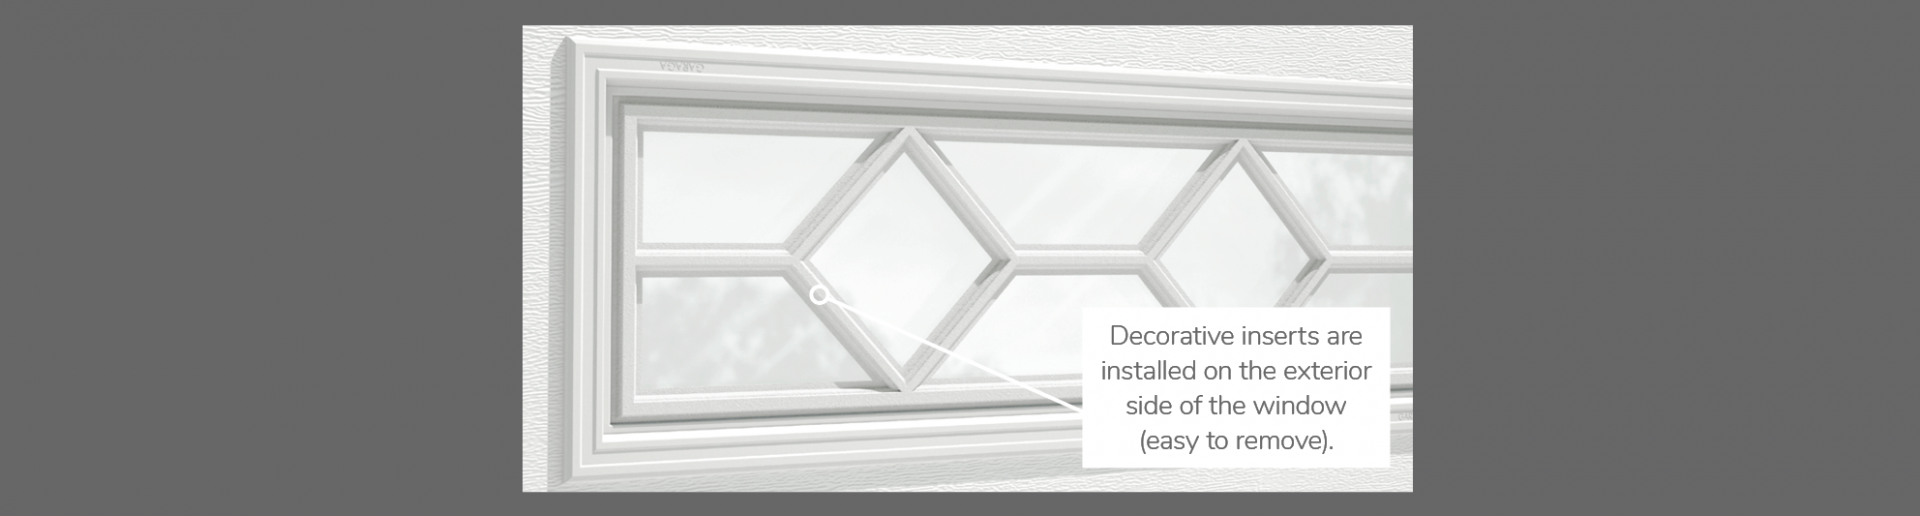 "Waterton Decorative Insert, 40"" x 13"" or 41"" x 16"", available for door R-16, R-12, 3 layers - Polystyrene, 2 layers - Polystyrene and Non-insulated"